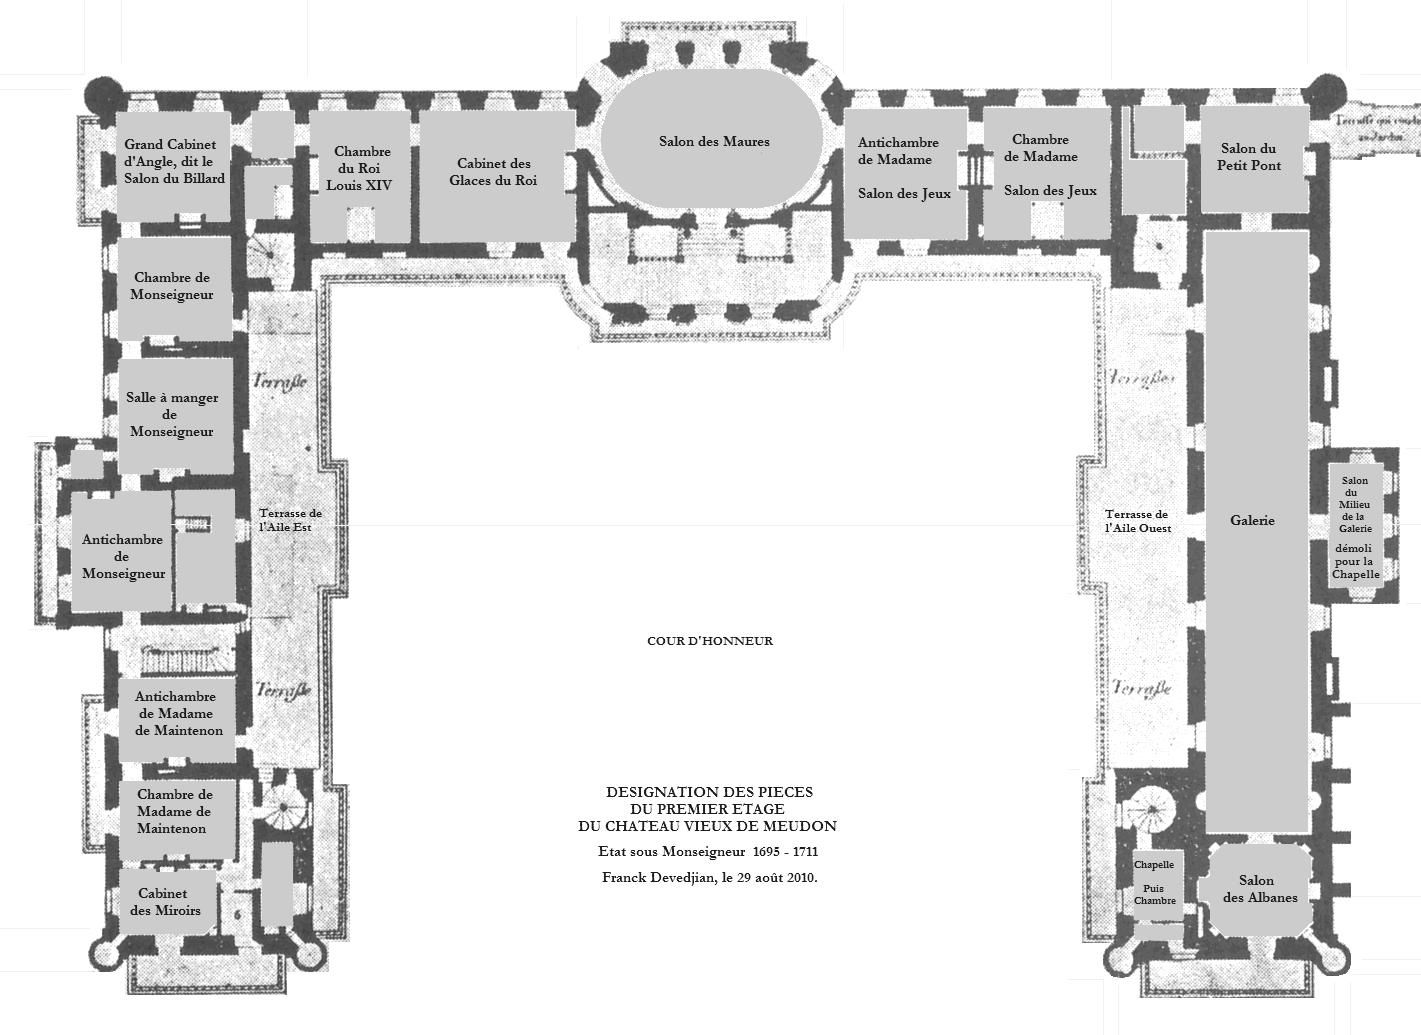 Chateau vieux de meudon floor plans castles palaces for French chateau floor plans